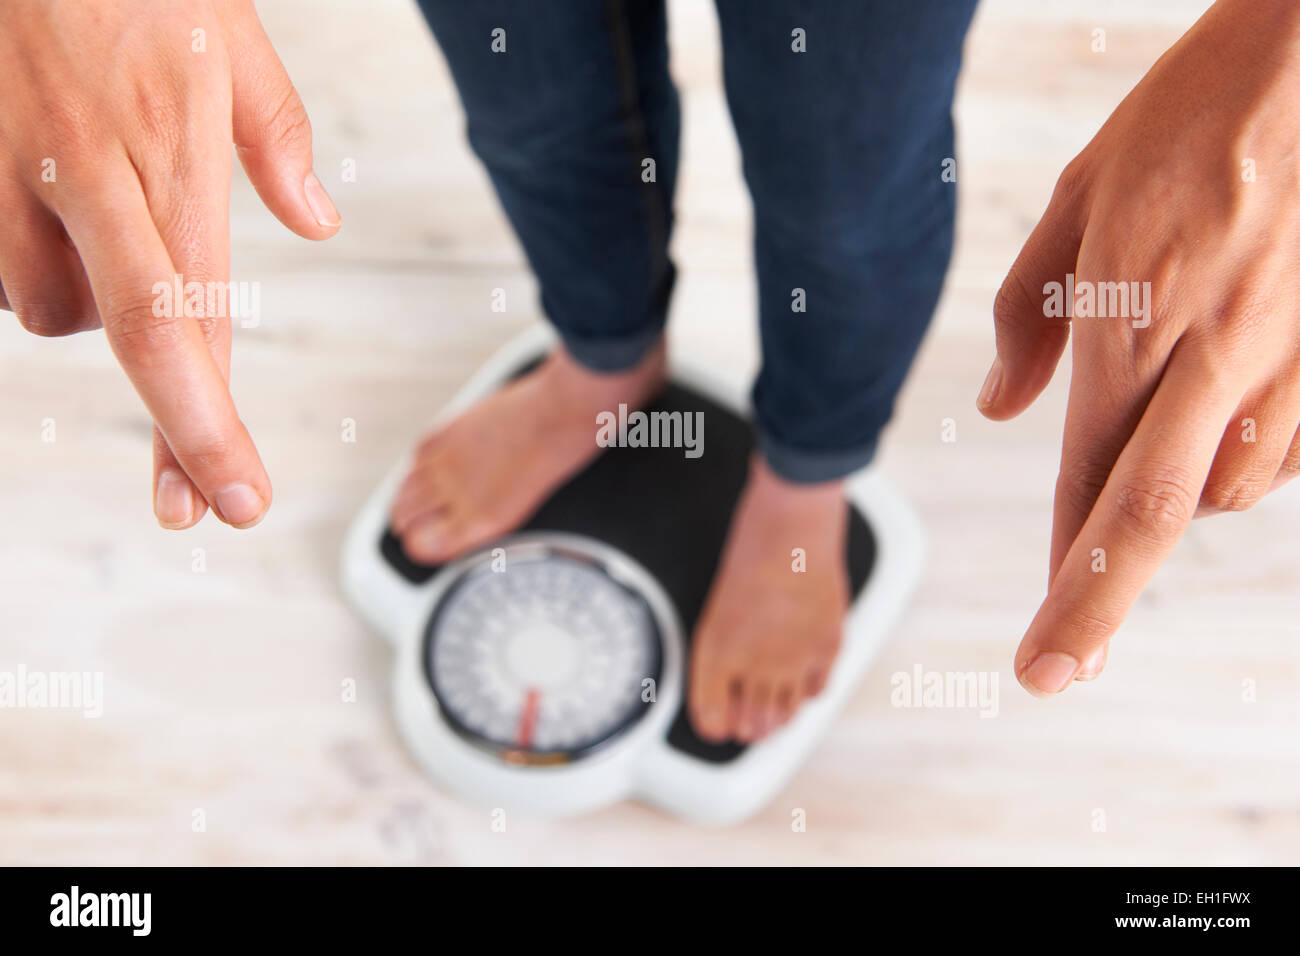 Woman Standing On Scales With Fingers Crossed - Stock Image